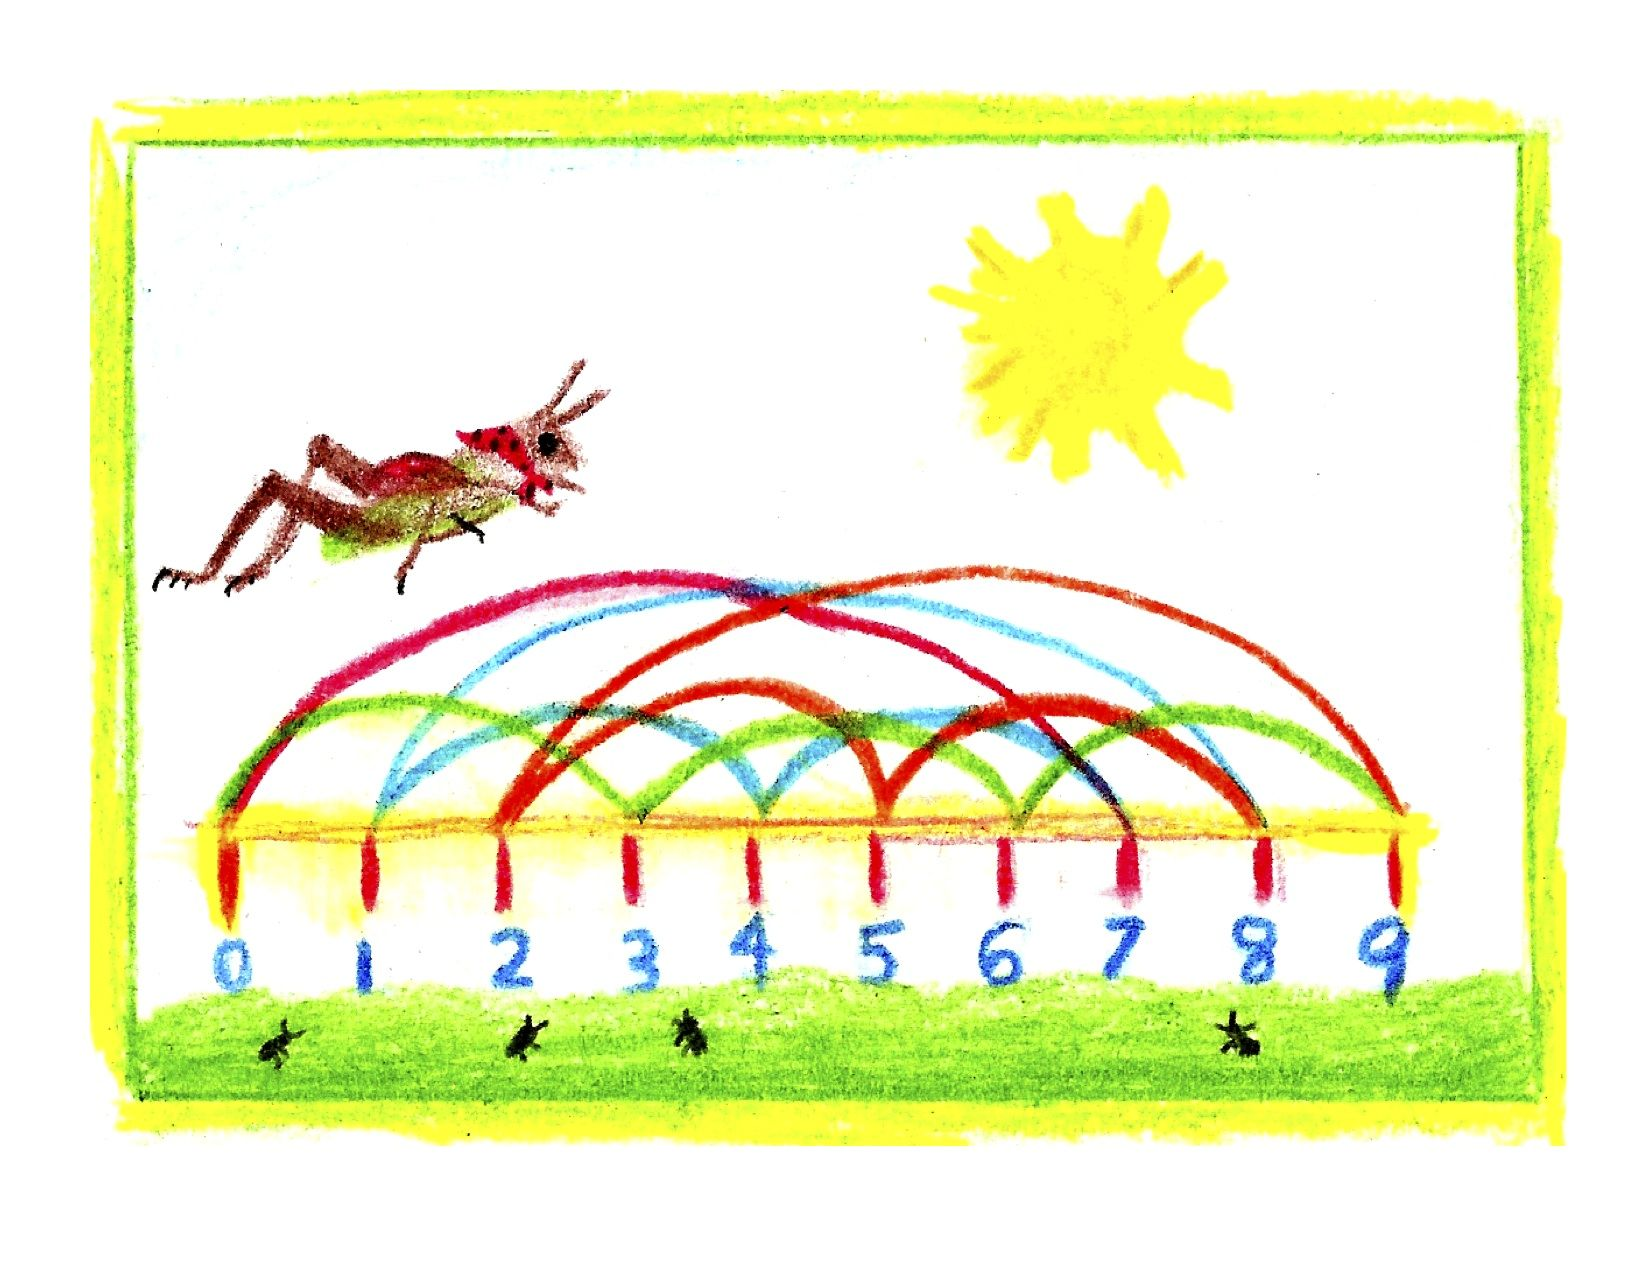 After Telling The Story The Grasshopper And The Ants Use Elements Of It To Illustrate A